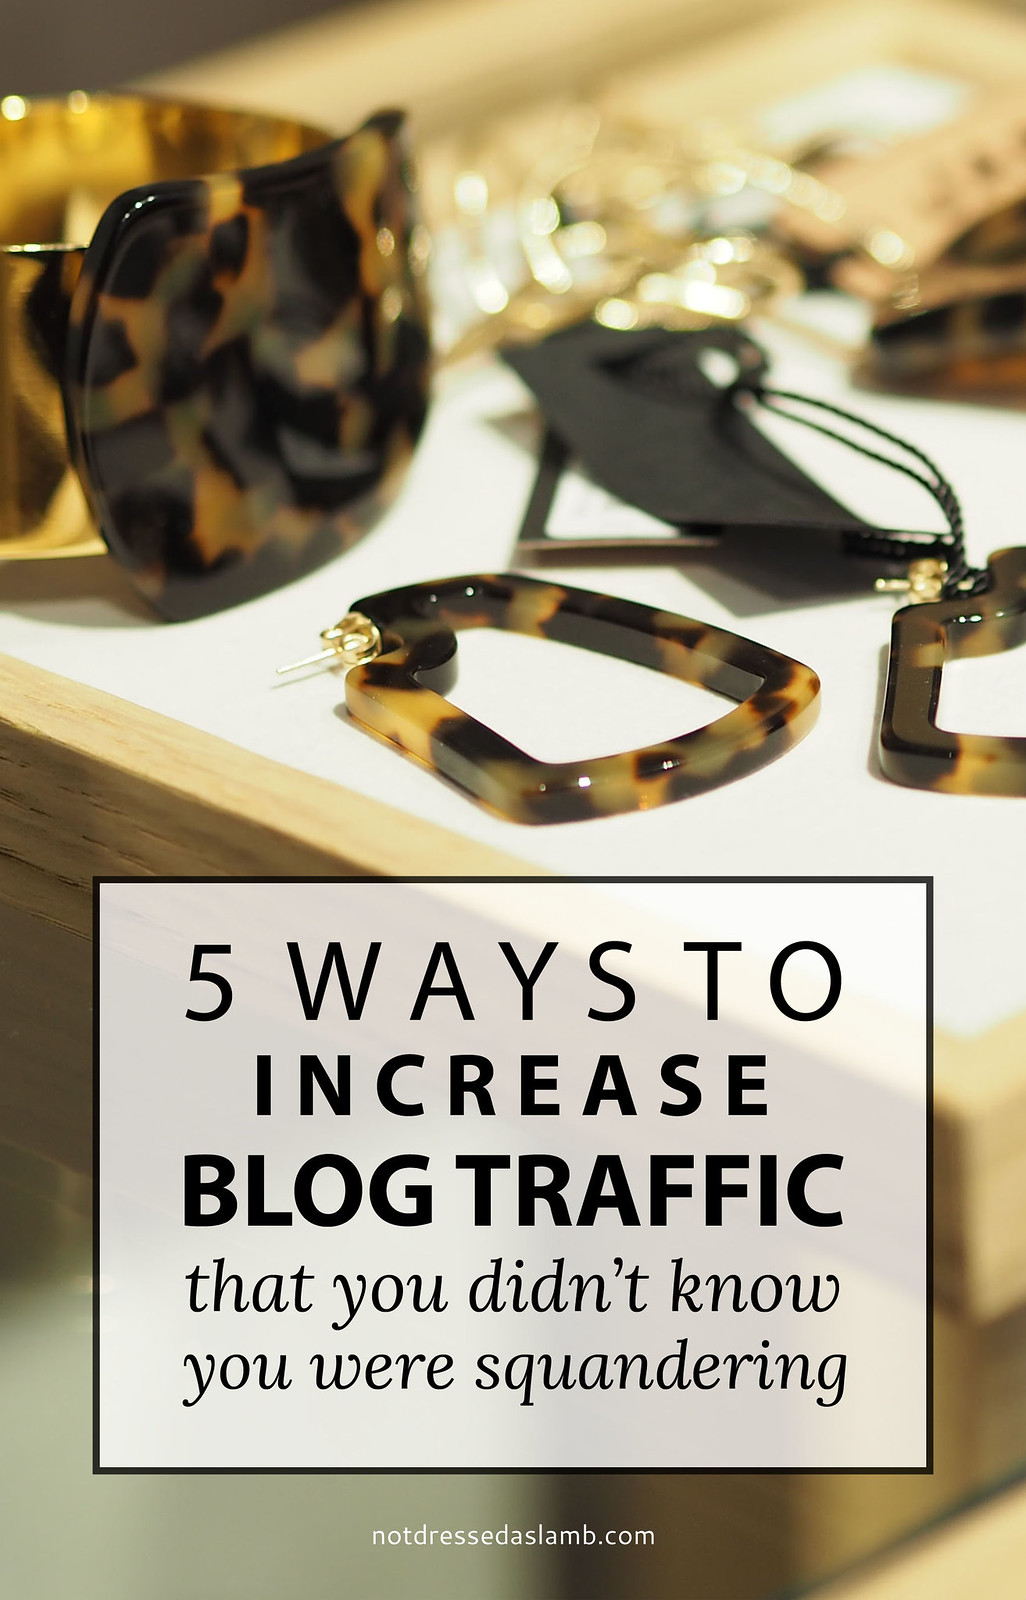 Blogging Tips | 5 Ways to Increase Blog Traffic That You Didn't Know You Were Squandering